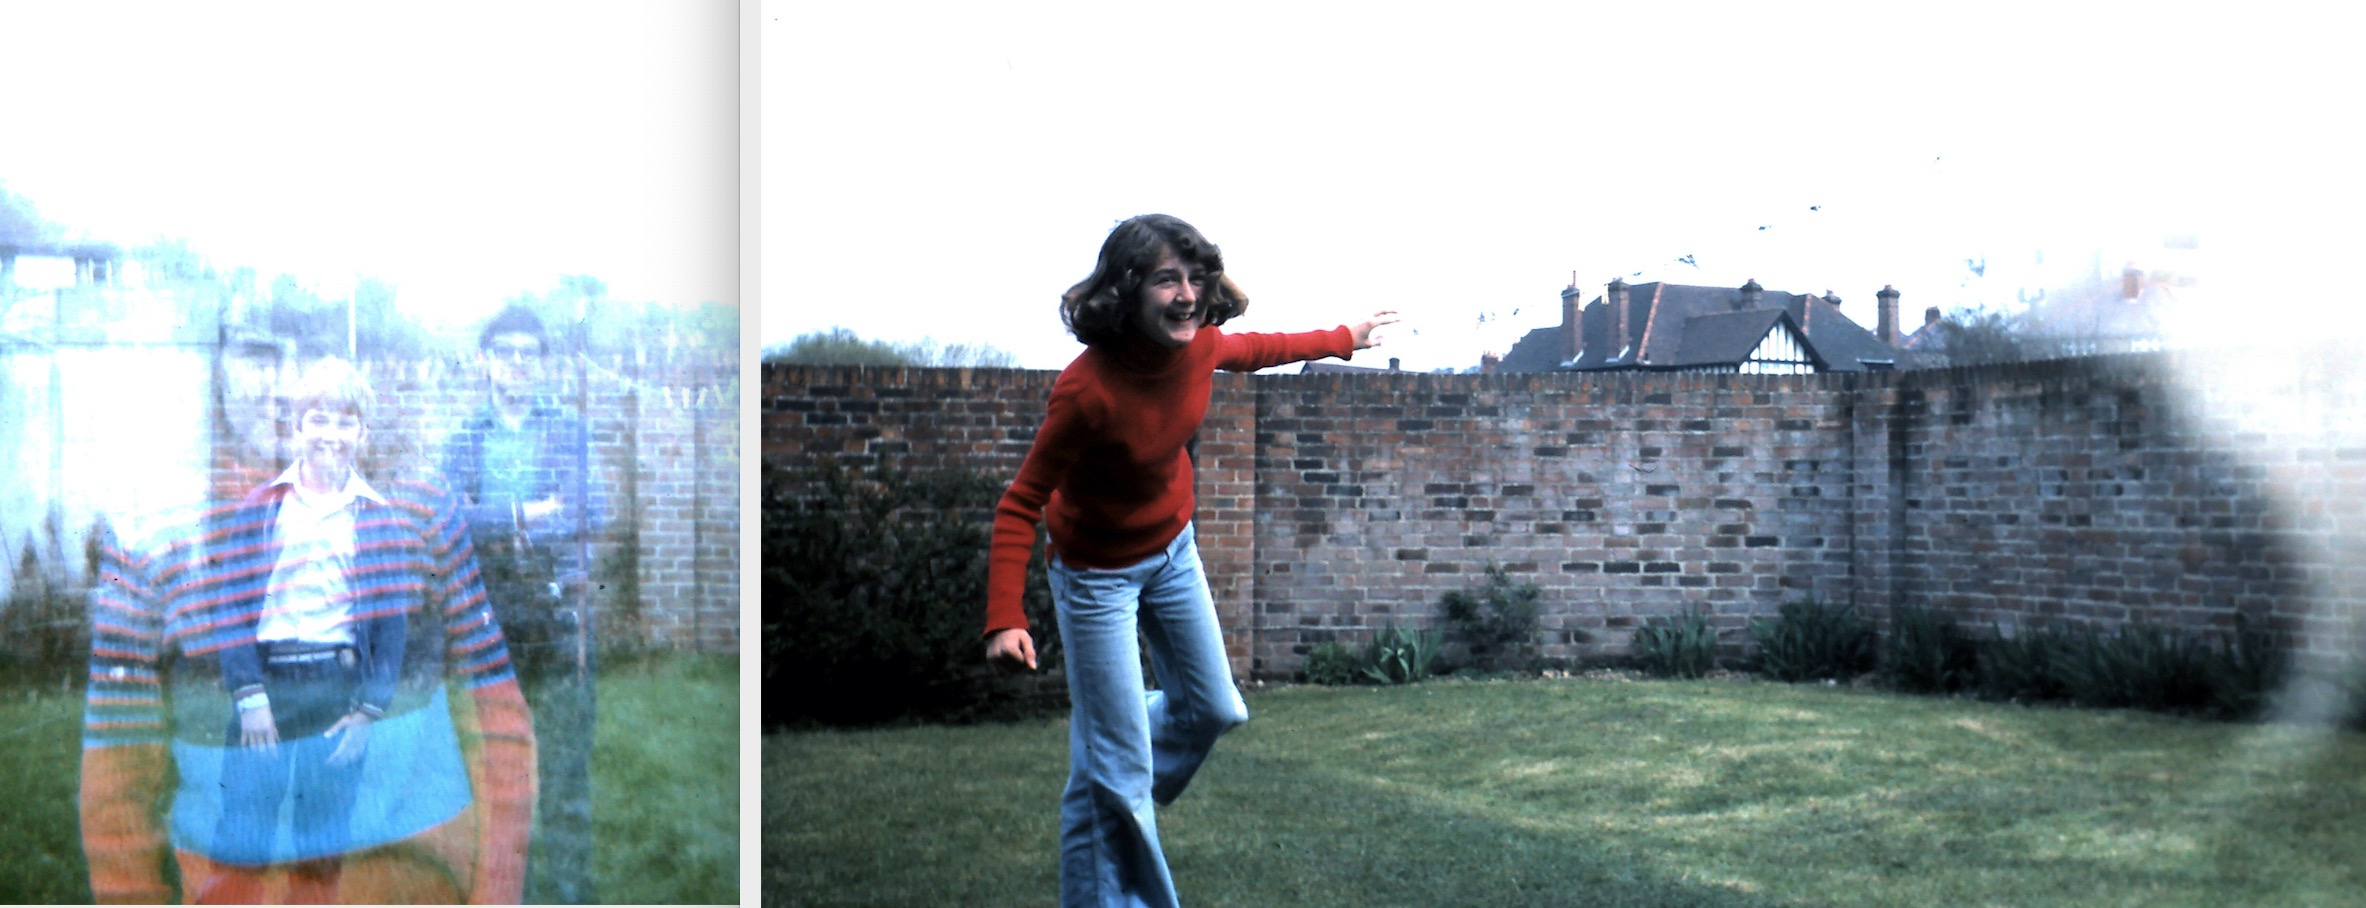 The image comprises two pictures side by side, separated by a narrow grey line. On the left is a picture of three children stood on grass in a red brick walled garden. The image shows the children as ghostly, placed one on another. In the foreground a head and body shot of girl in a red and blue striped jumper, behind her a three quarter length shot of a boy in a white shirt, blue cardigan and blue jeans next to another taller boy wearing black framed glasses, his arms folded, wearing a blue shirt, cardigan and jeans. Looking carefully you can see that the taller boy is actual a ghostly apparition behind the smaller boy. The image to the right shows the same girl in the same setting apparently fleeing toward the camera. Behind her can be seen a superimposed image of white and black rings, which are not fully clear